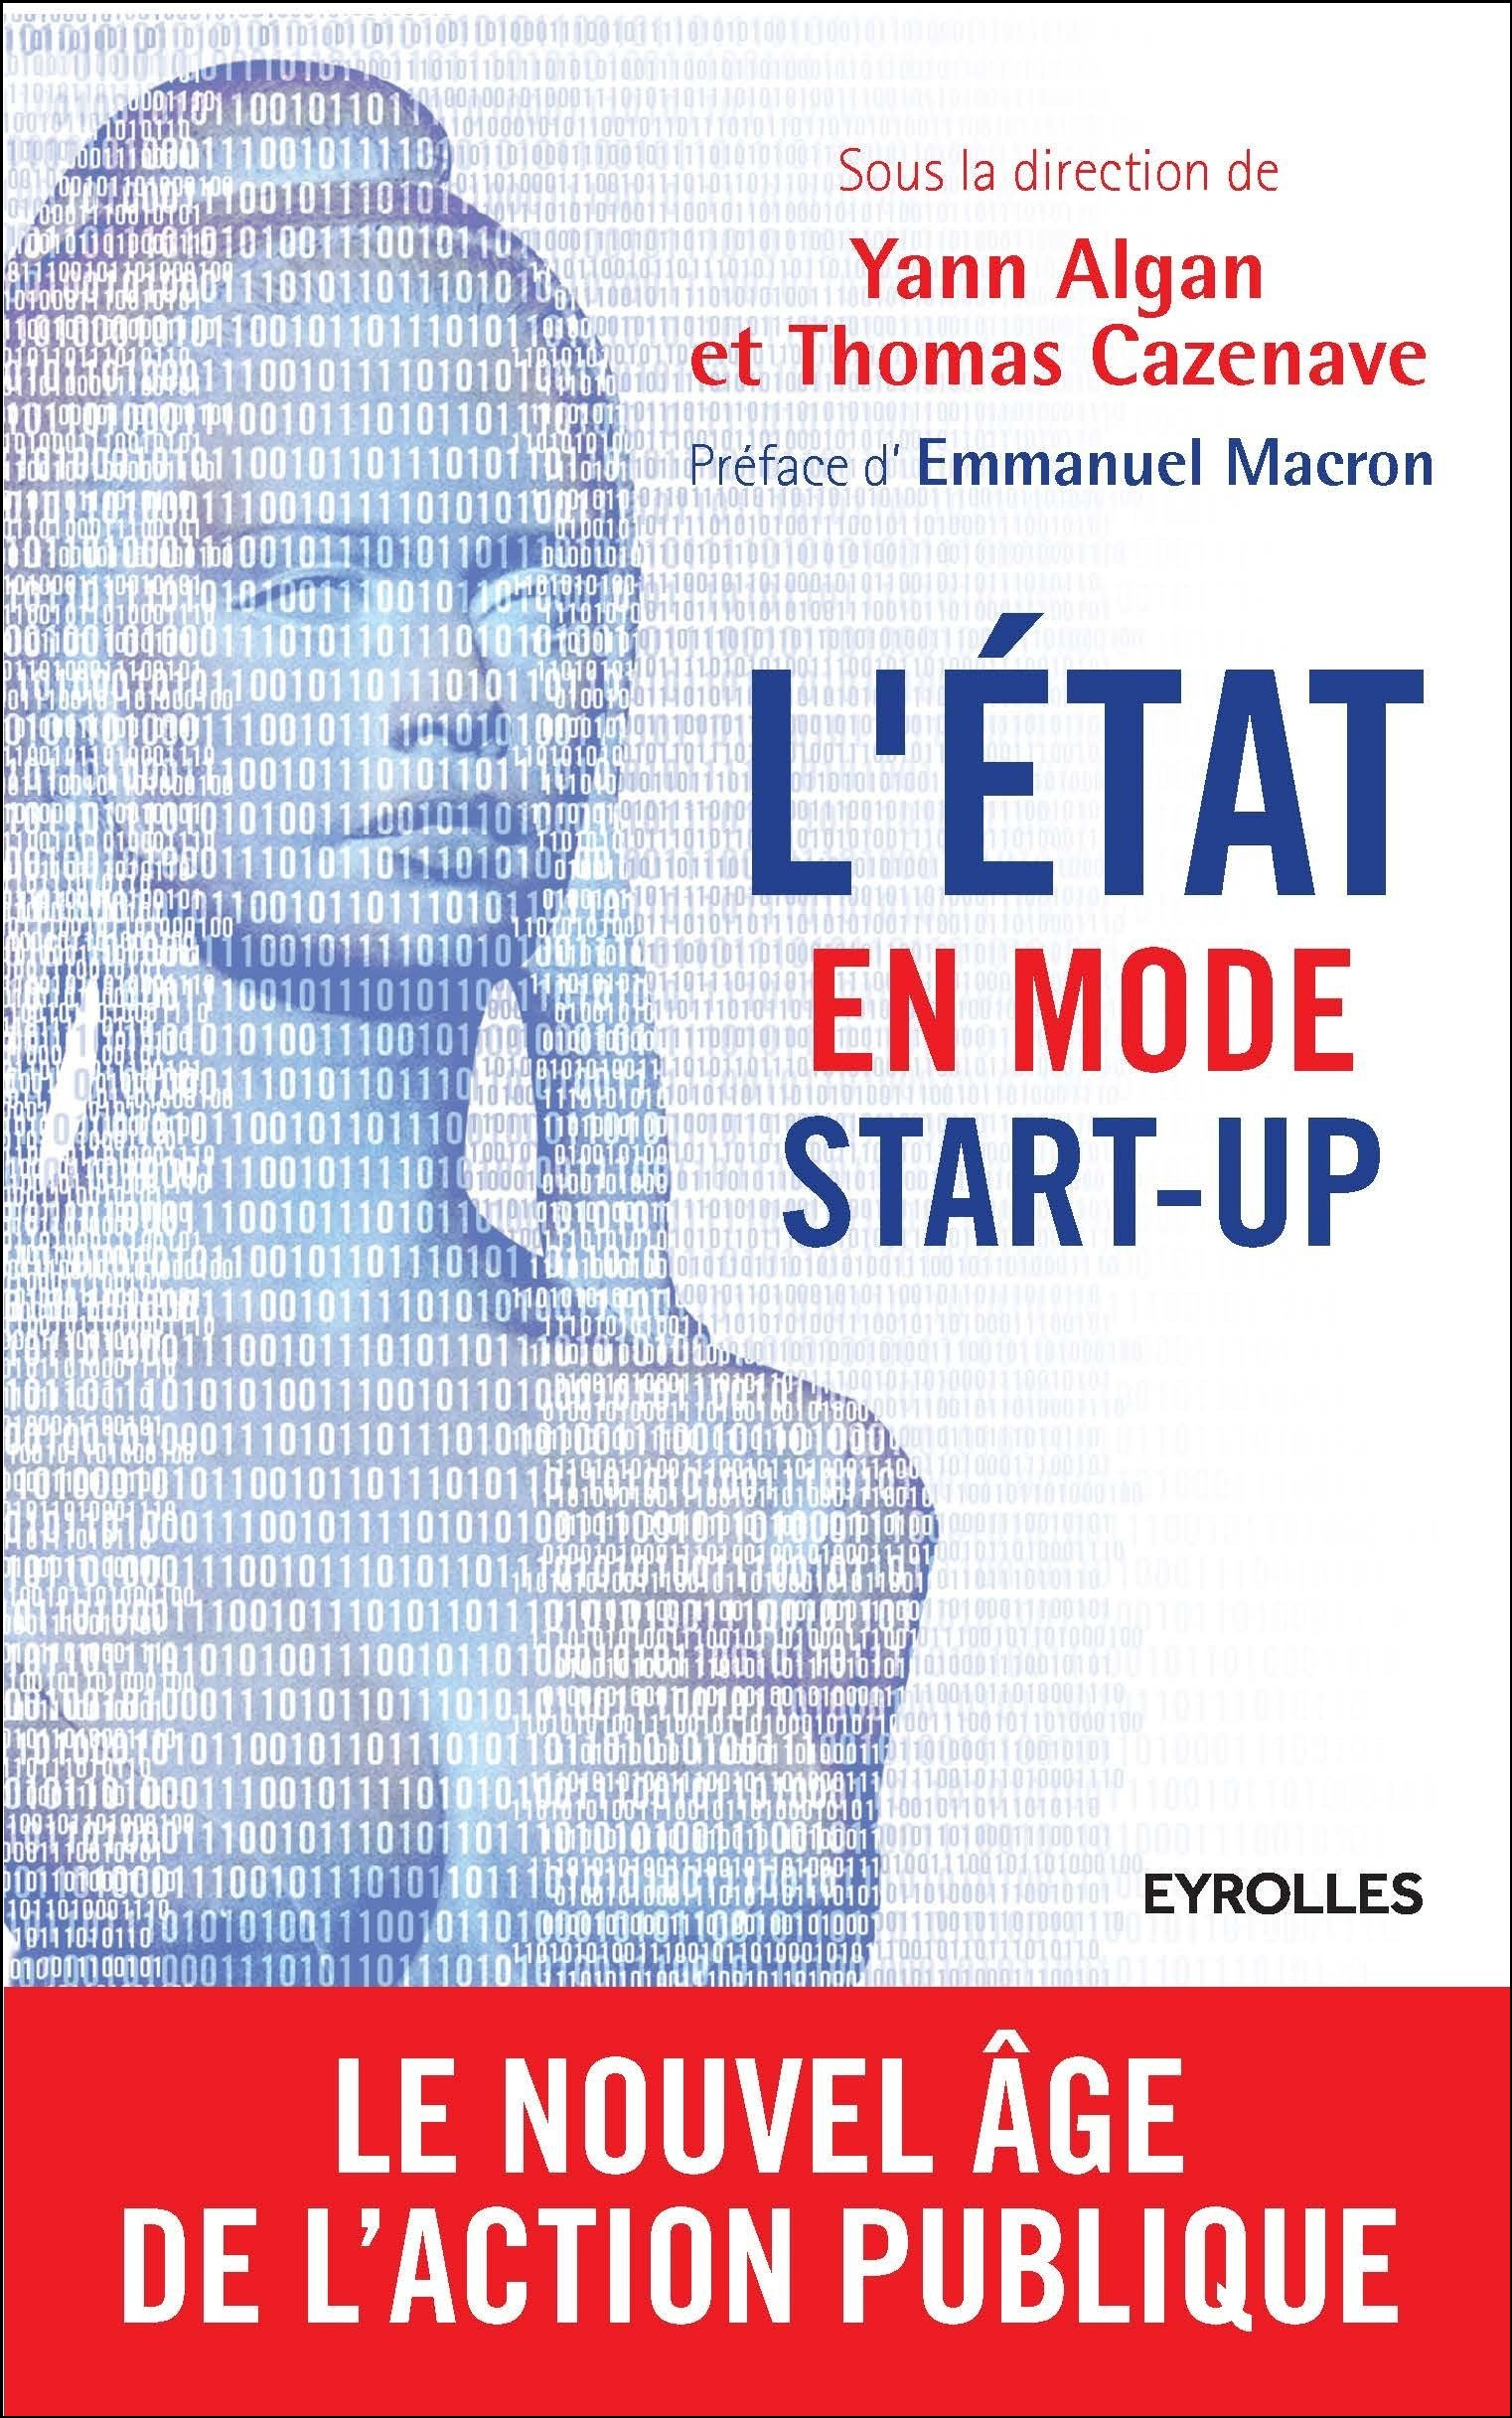 L'Etat en mode start-up - Le nouvel âge de l'action publique